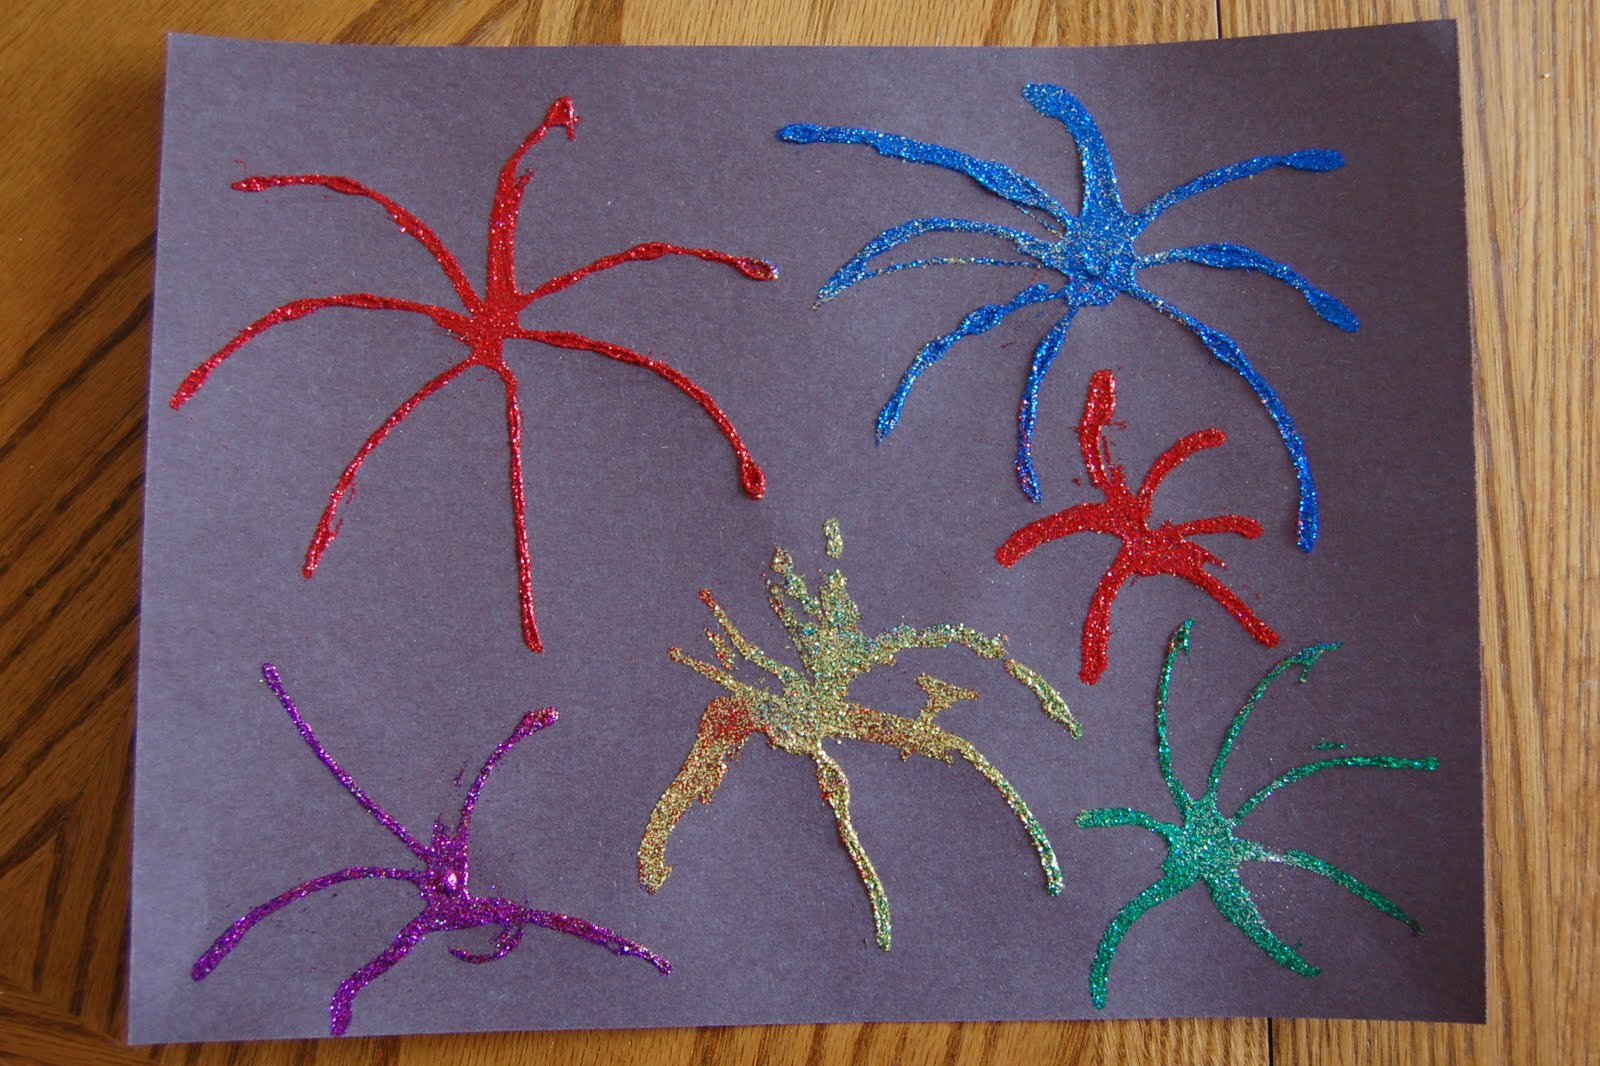 Preschool Crafts For Kids 4th Of July Glitter Fireworks